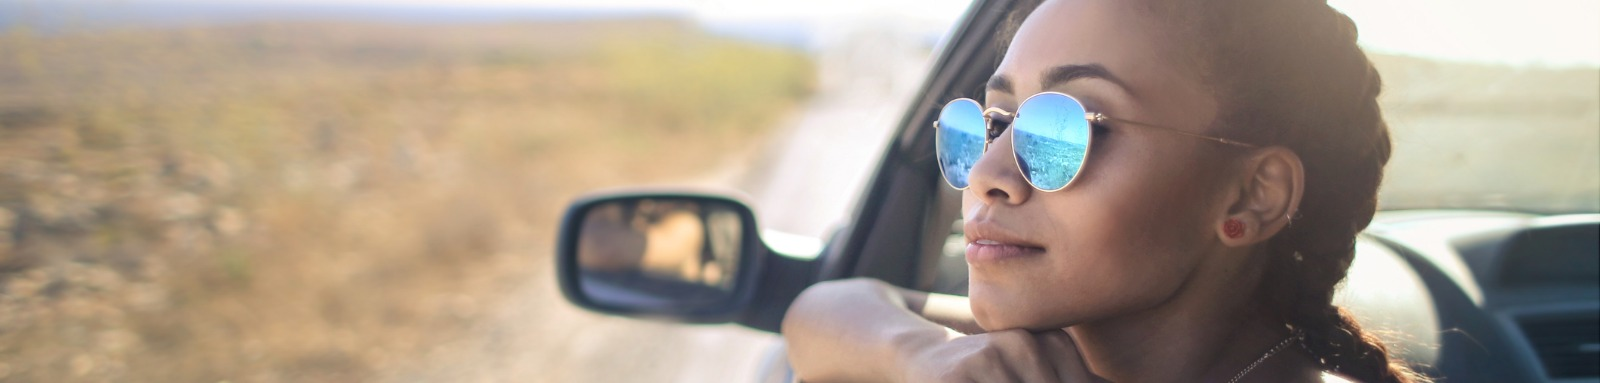 Woman in sunglasses looking at empty landscape from car